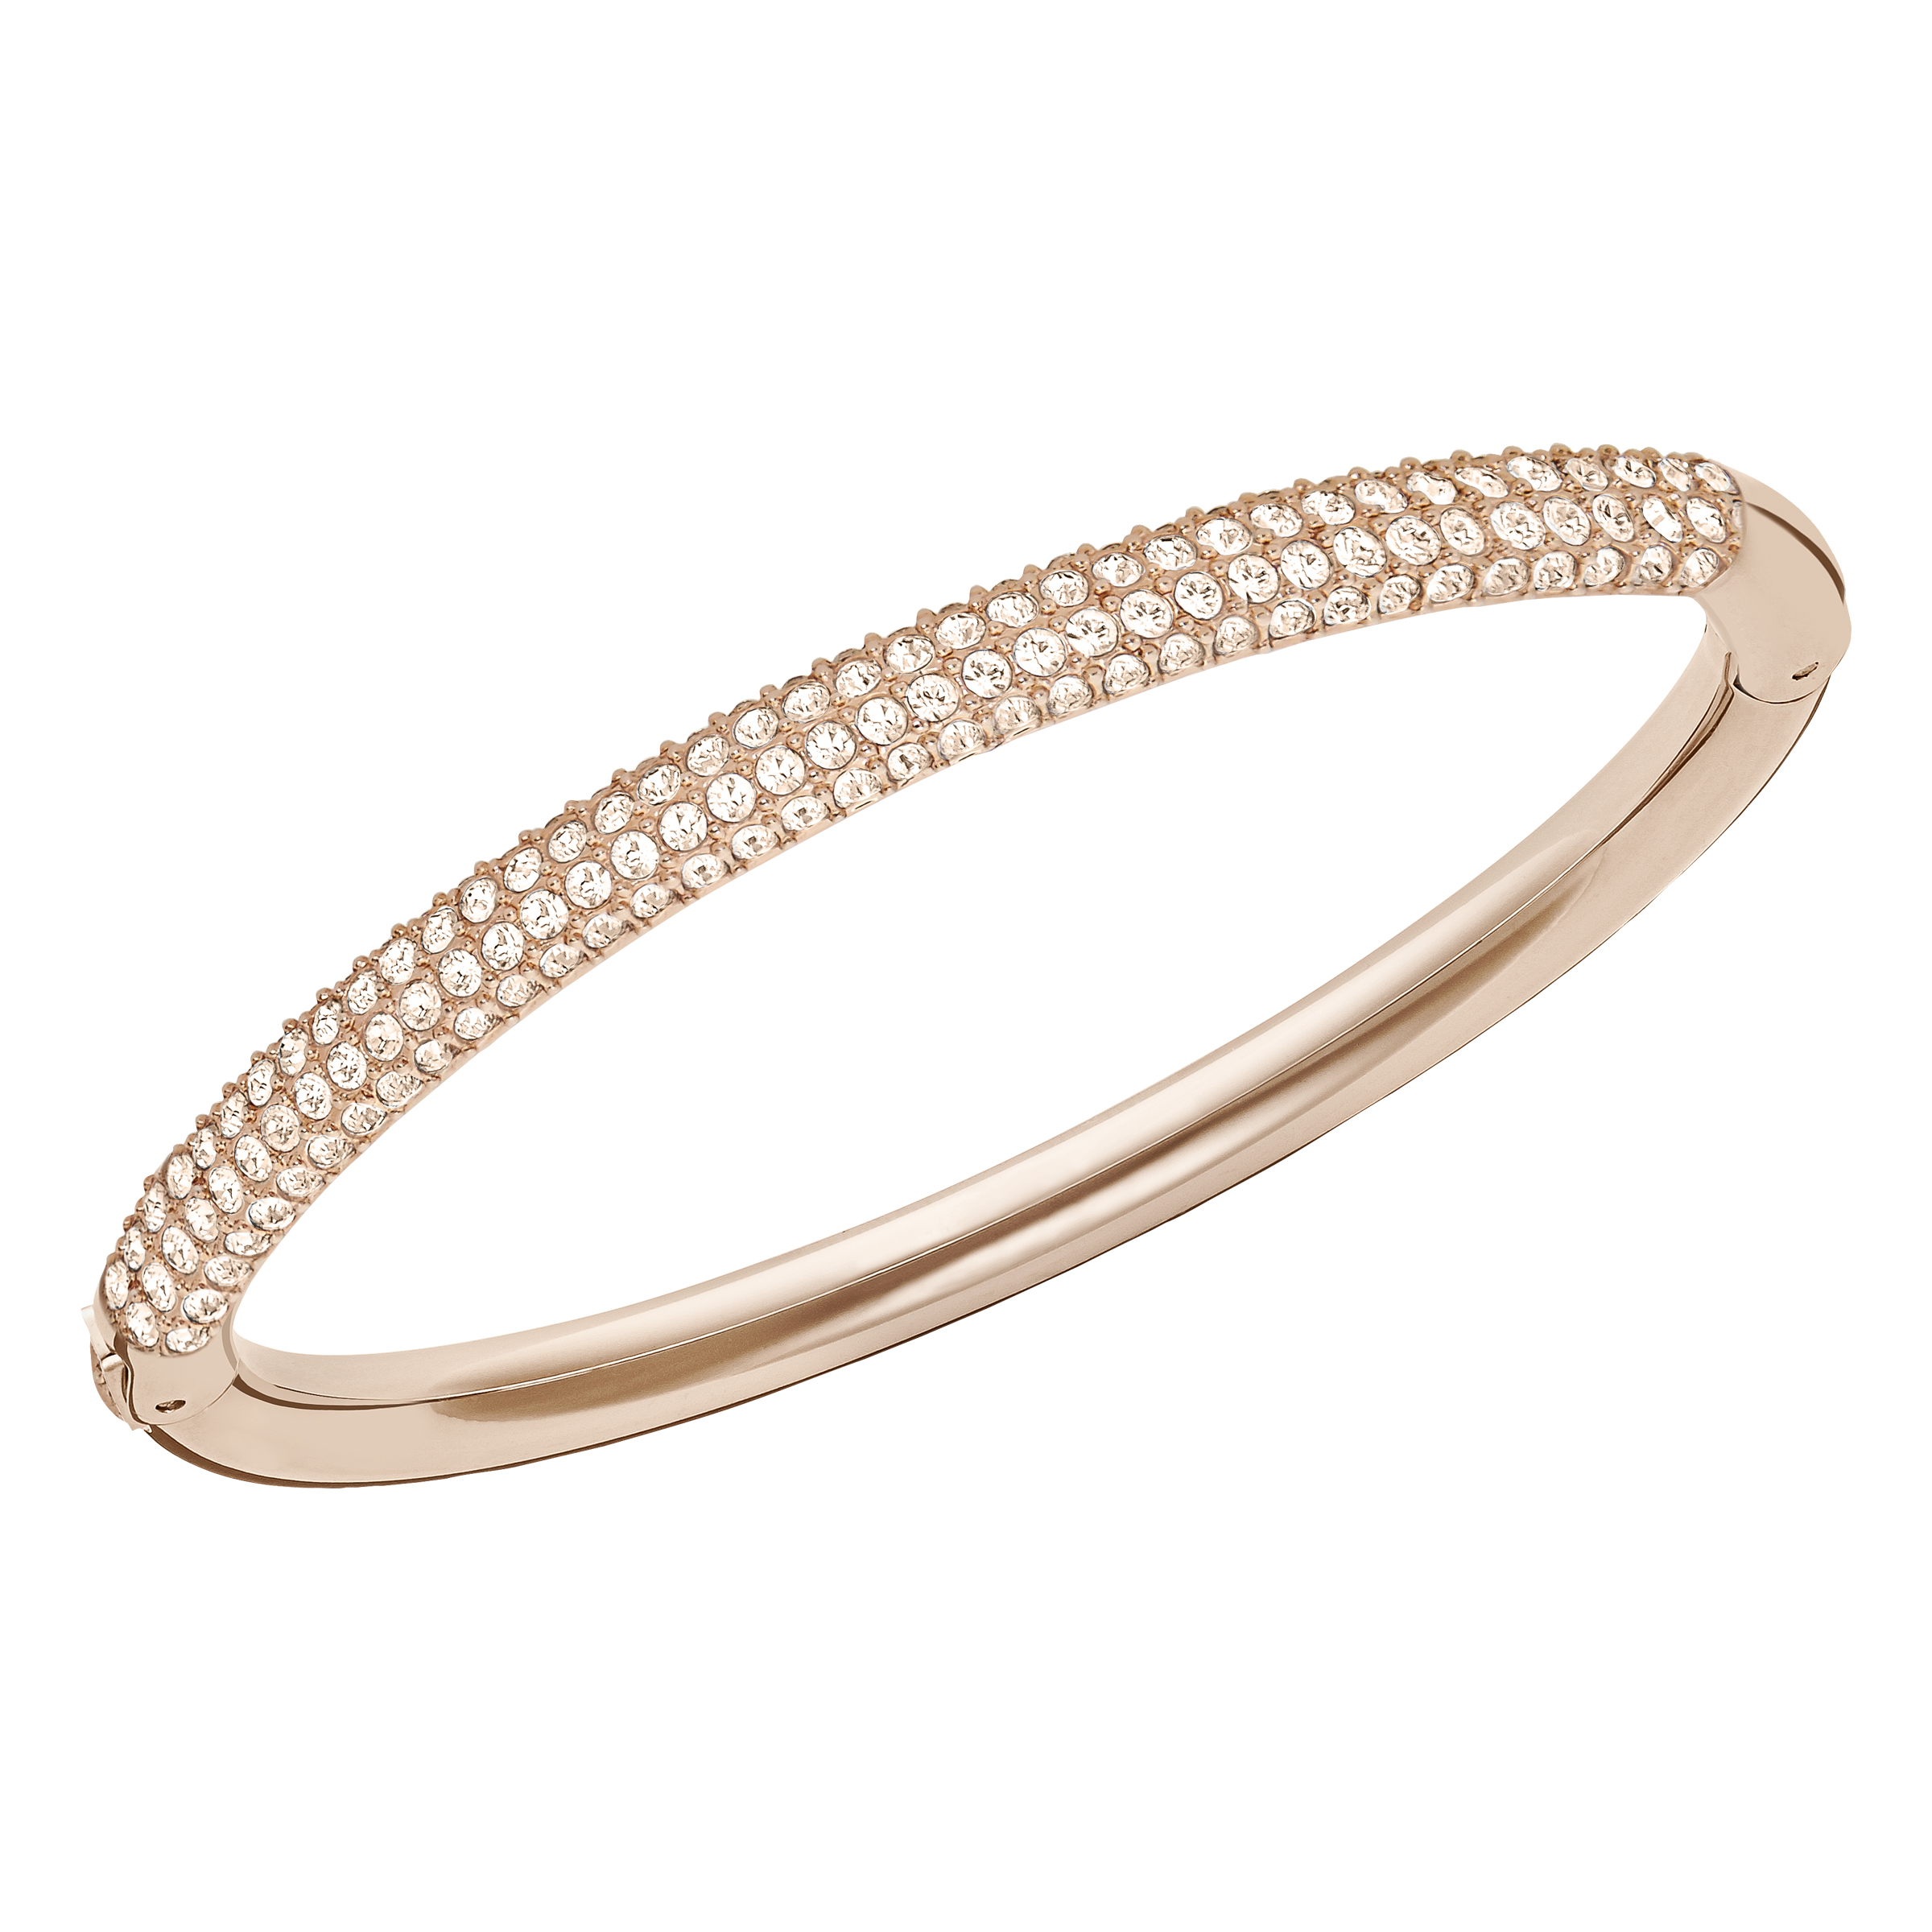 Stone Mini Bangle, White, Rose Gold Plating